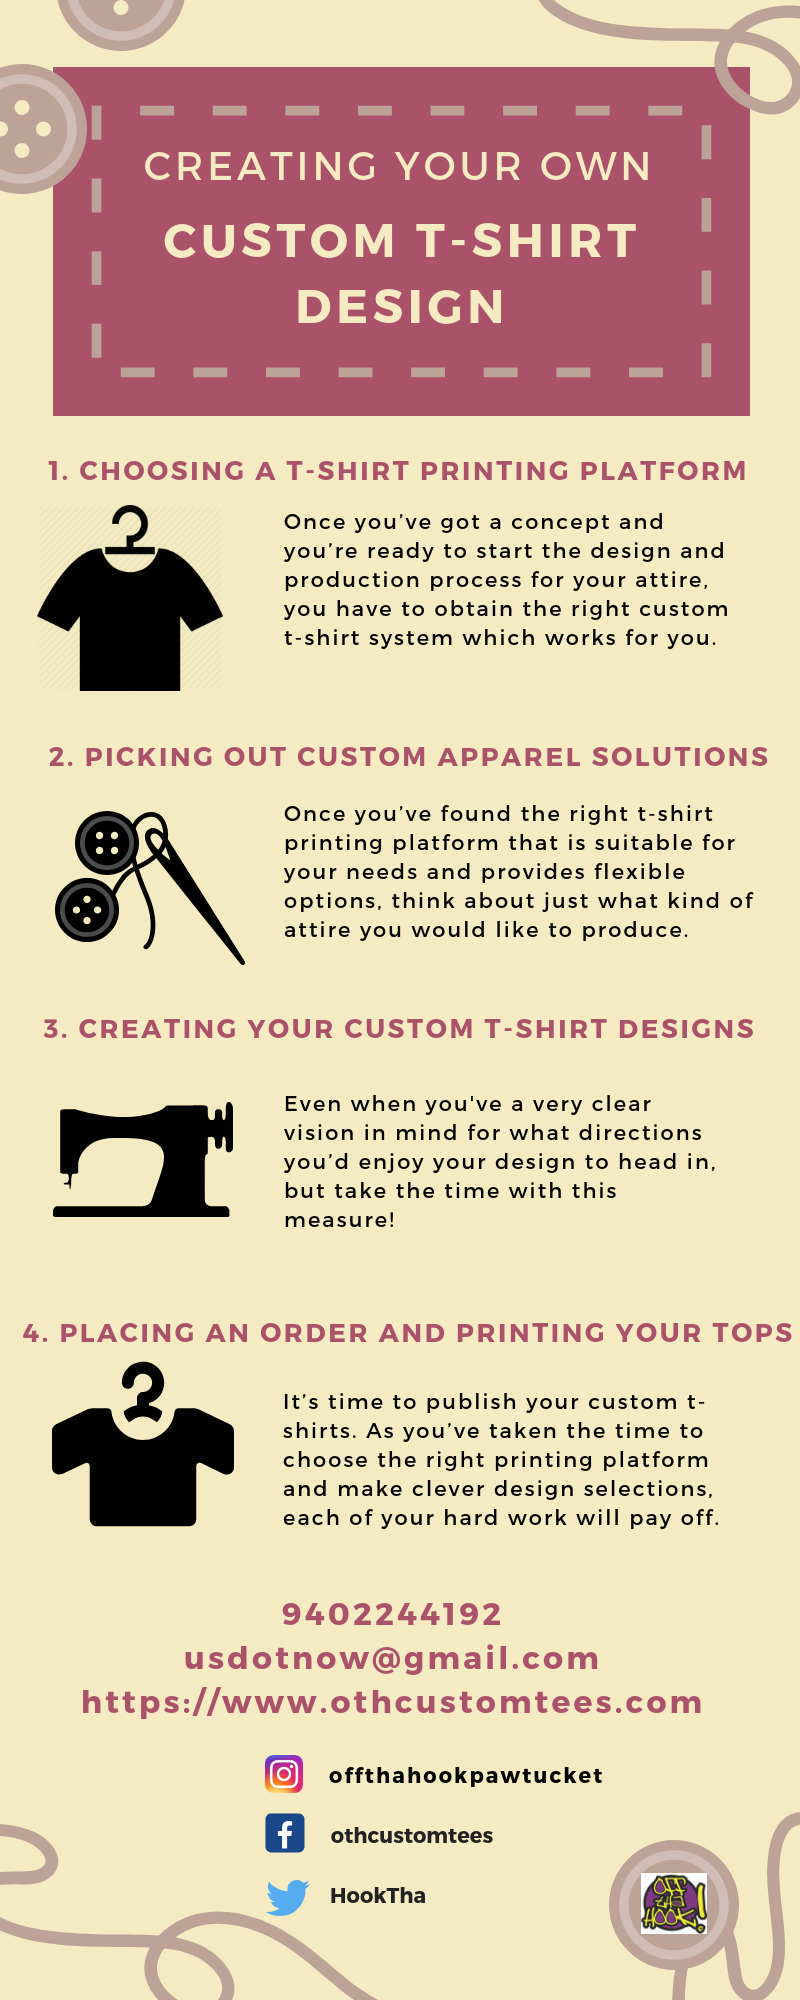 610e0c3da Do you need of custom t-shirt design service, then stop your search at Off  Tha Hook that specializes in offering the best services including heat  transfers, ...